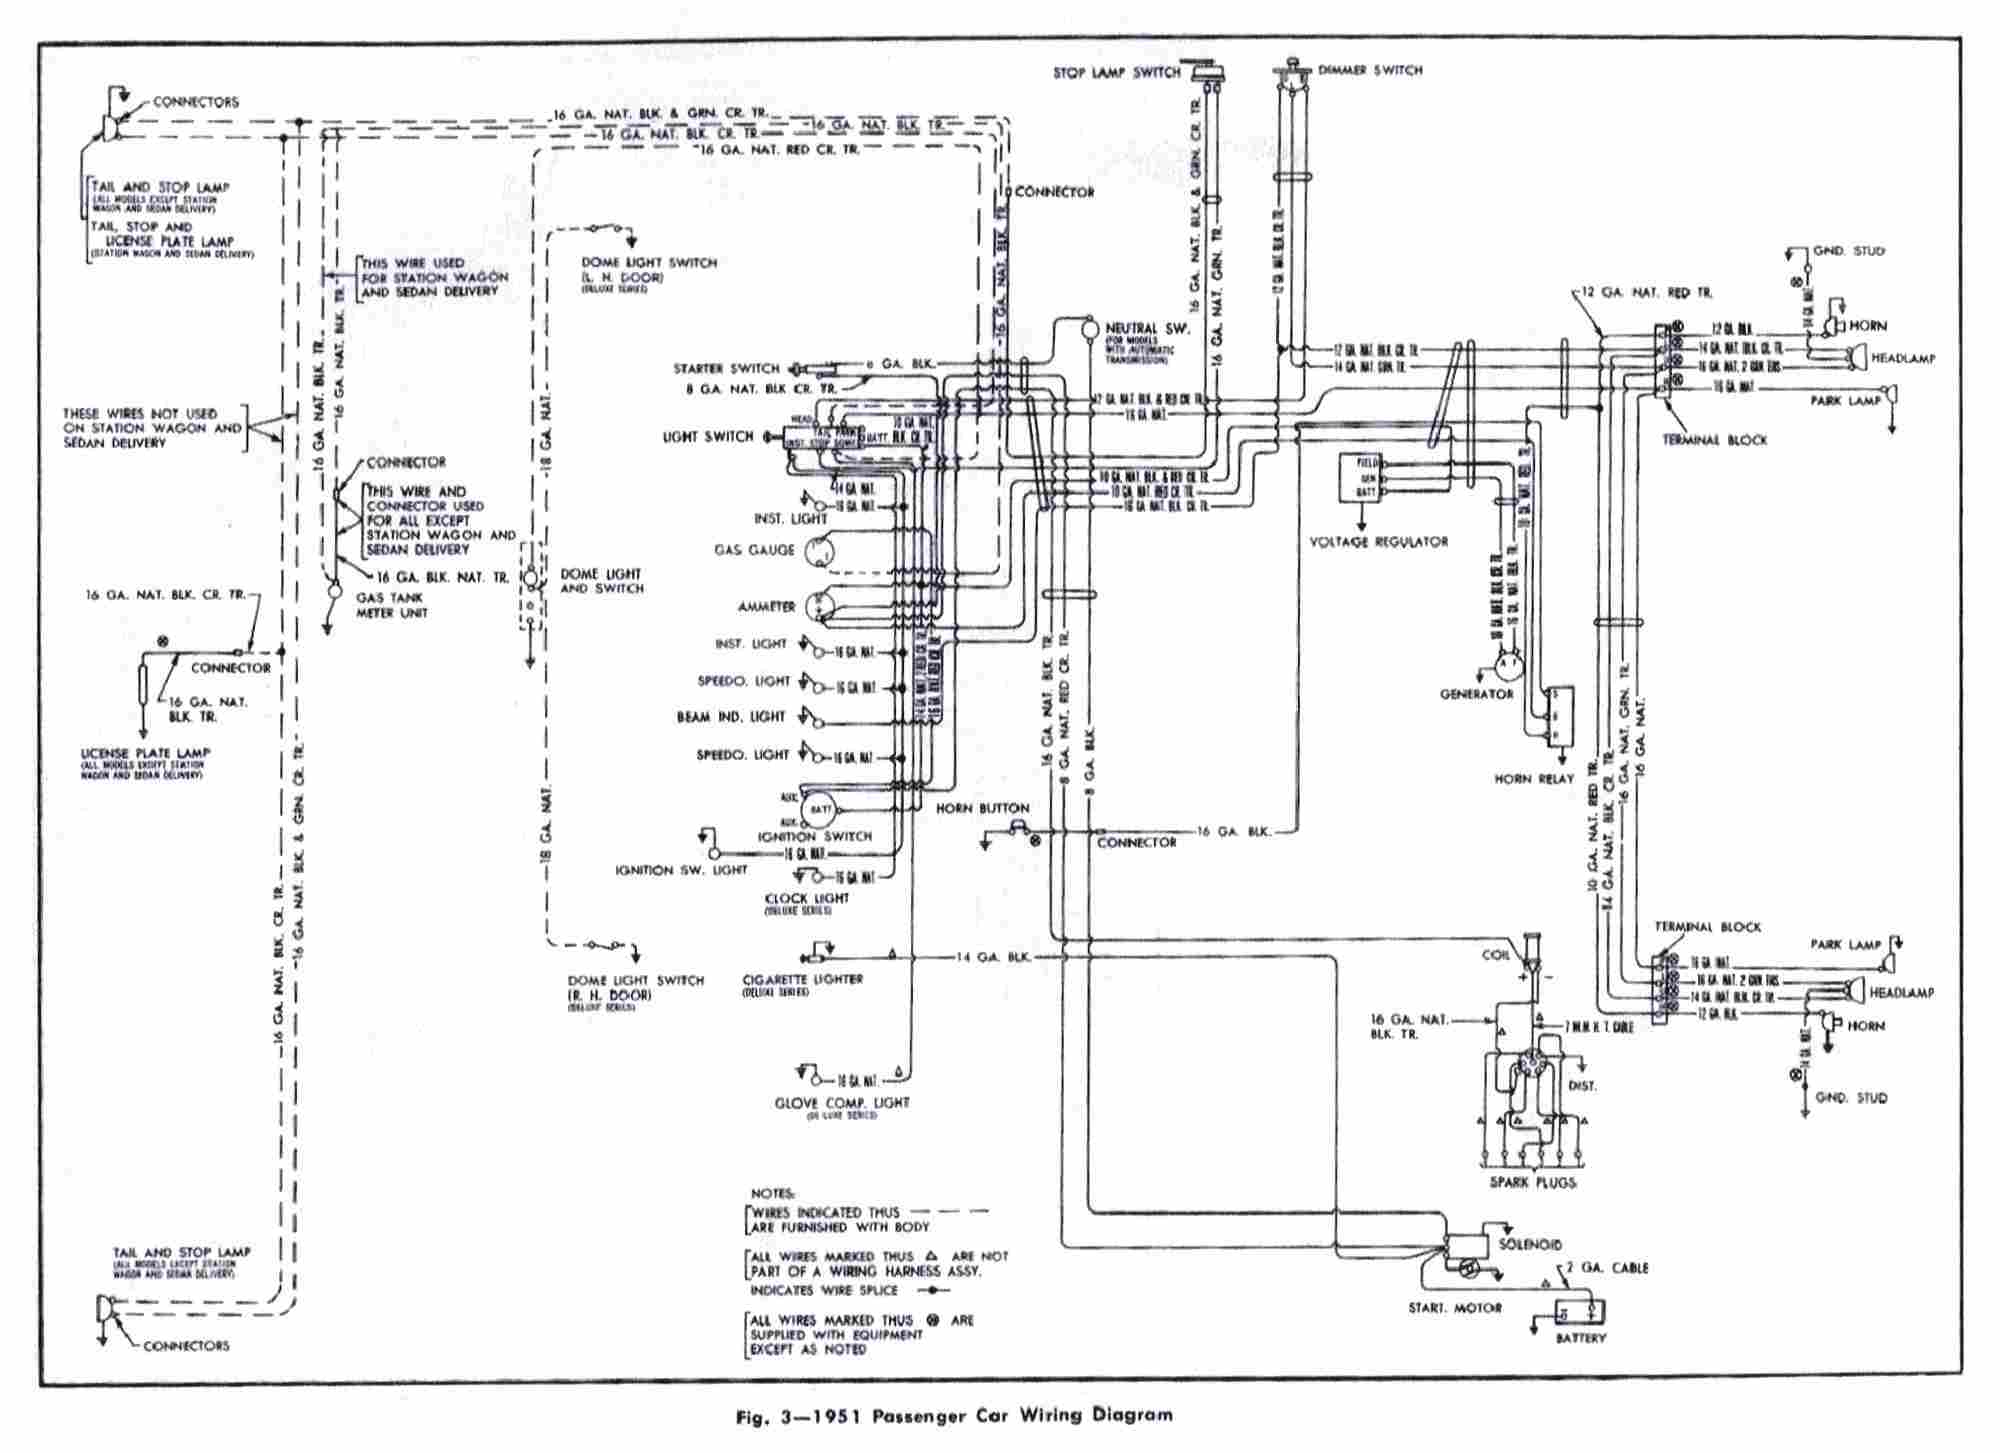 68 Firebird Wiring Diagram 1955 Chevy For 1988 Get Free Image